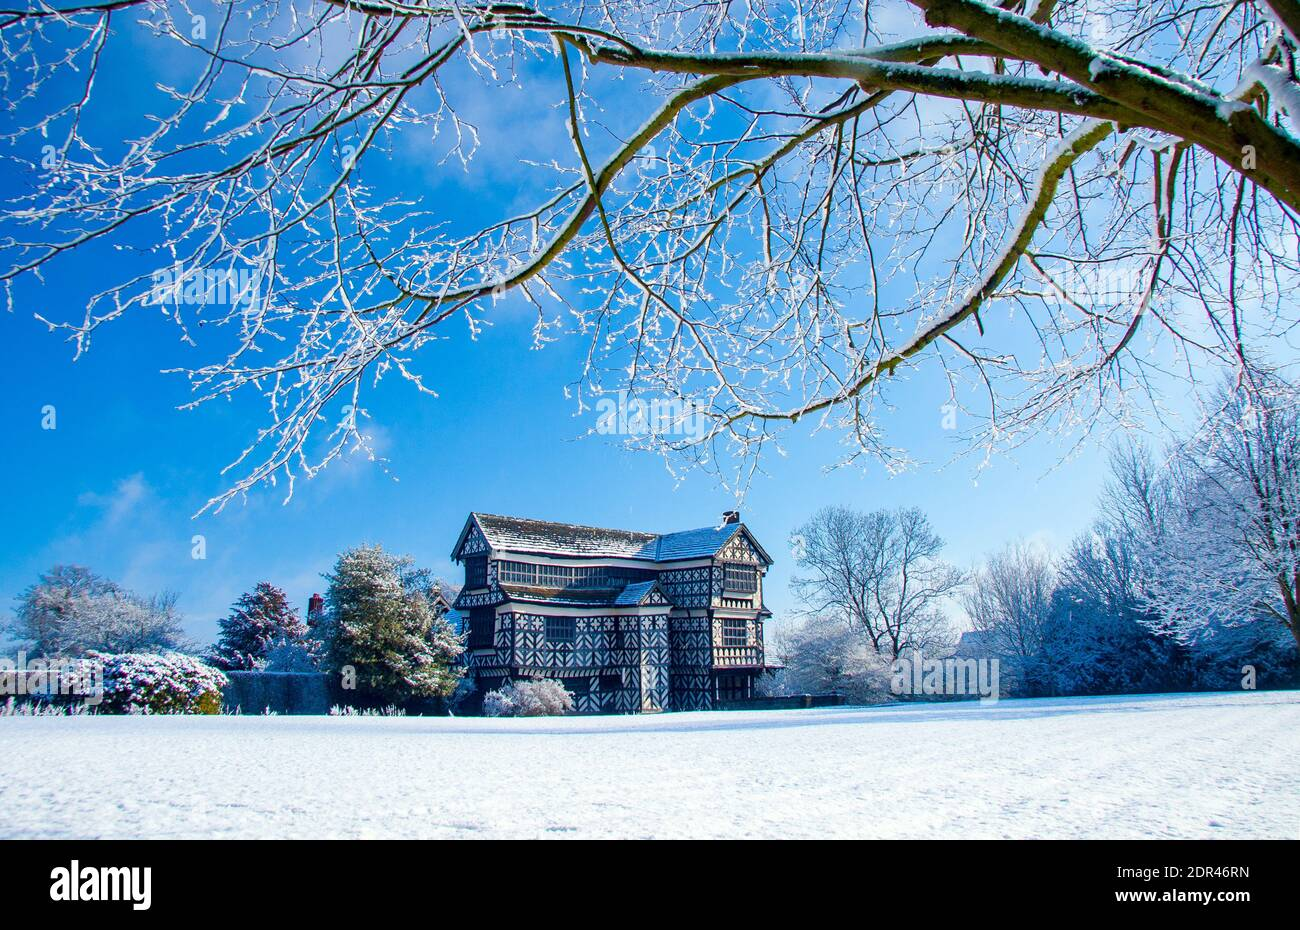 Little Moreton Hall a Tudor manor house owned by the National Trust  near Congleton Cheshire England in the snow as seen from the south Cheshire way Stock Photo